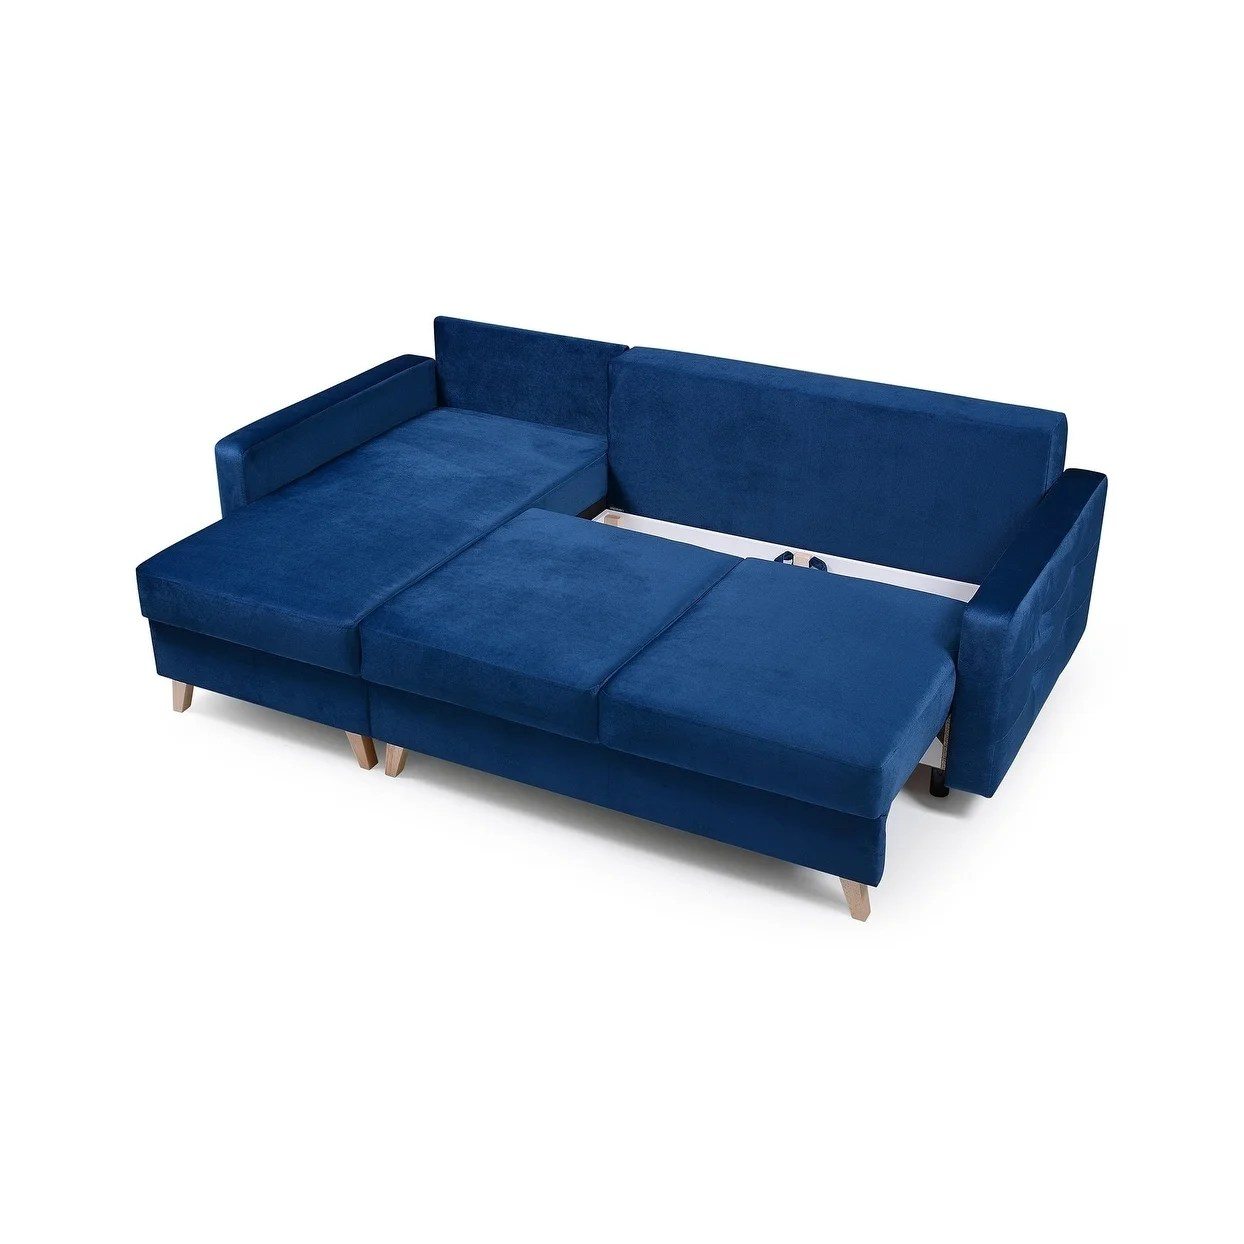 Vegas Futon Sectional Sofa Bed Queen Sleeper With Storage On Sale Overstock 23558765 Navy